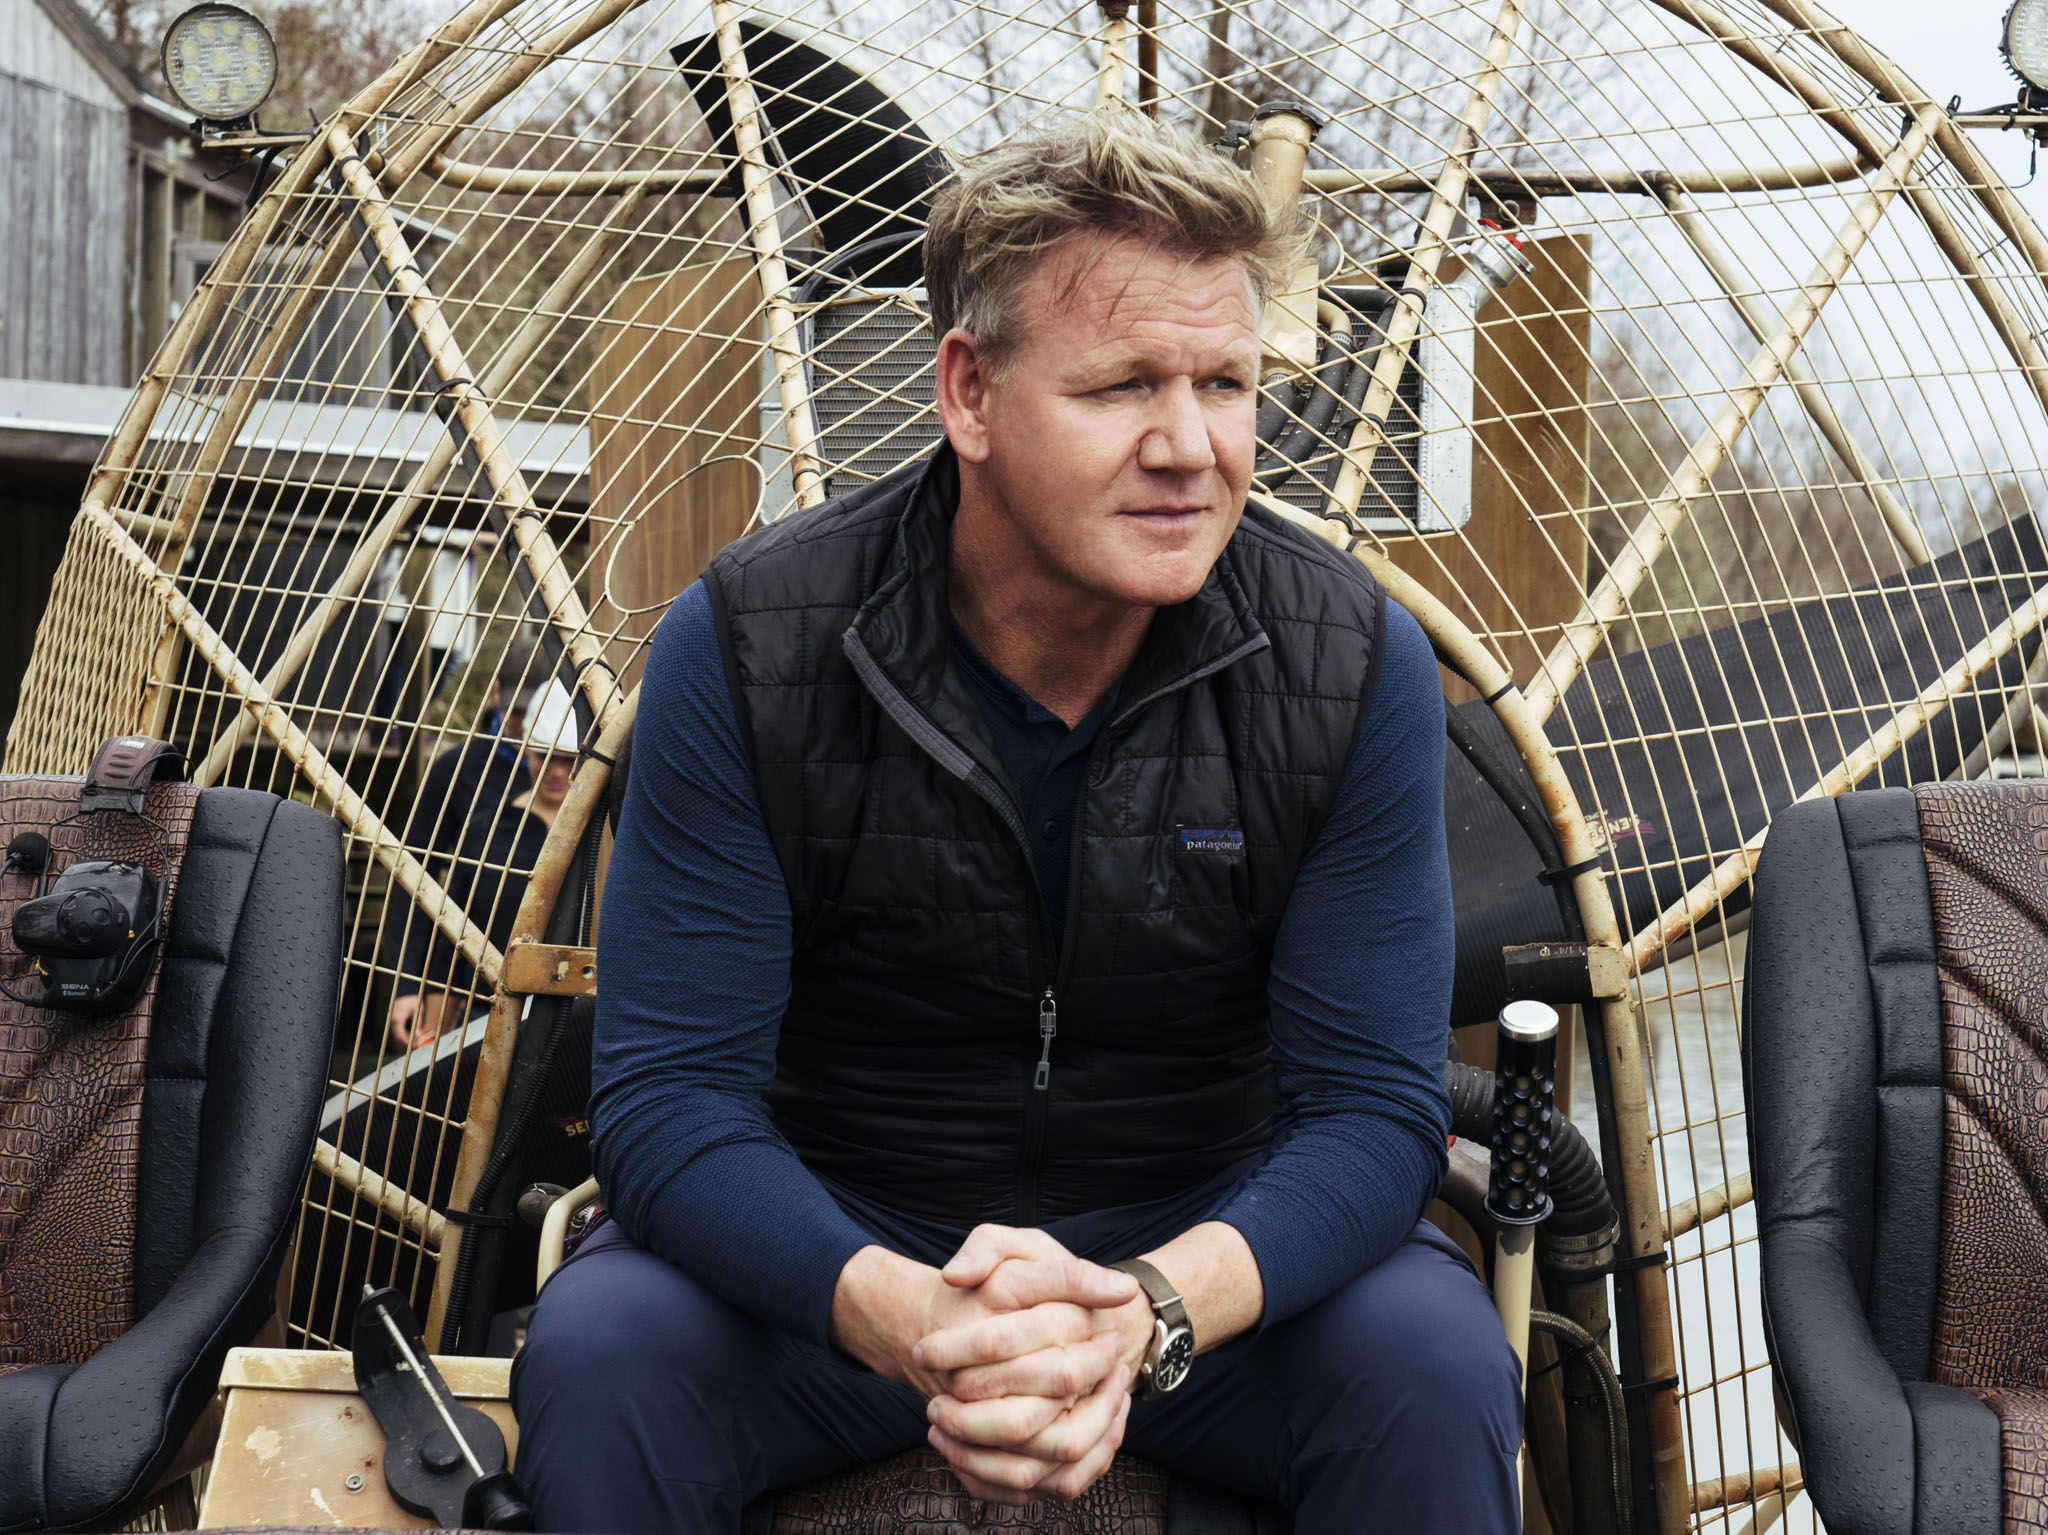 Gordon Ramsay in southern Louisiana. This image is from Gordon Ramsay: Uncharted. [Photo of the day - September 2020]